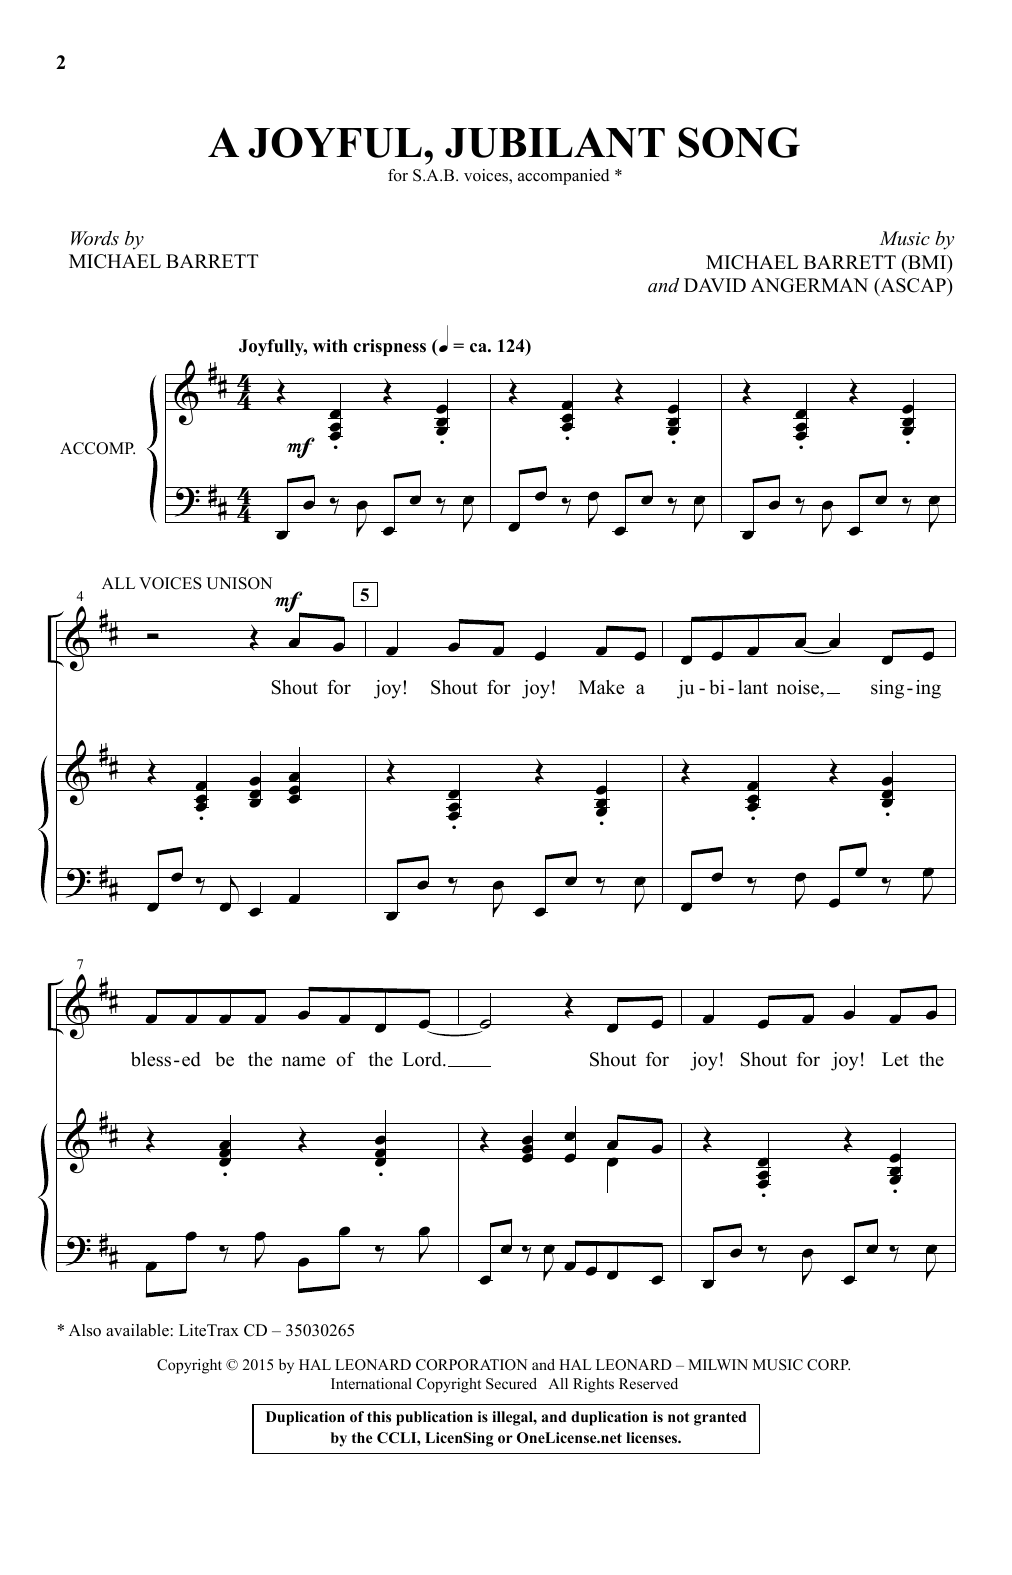 A Joyful, Jubilant Song Sheet Music